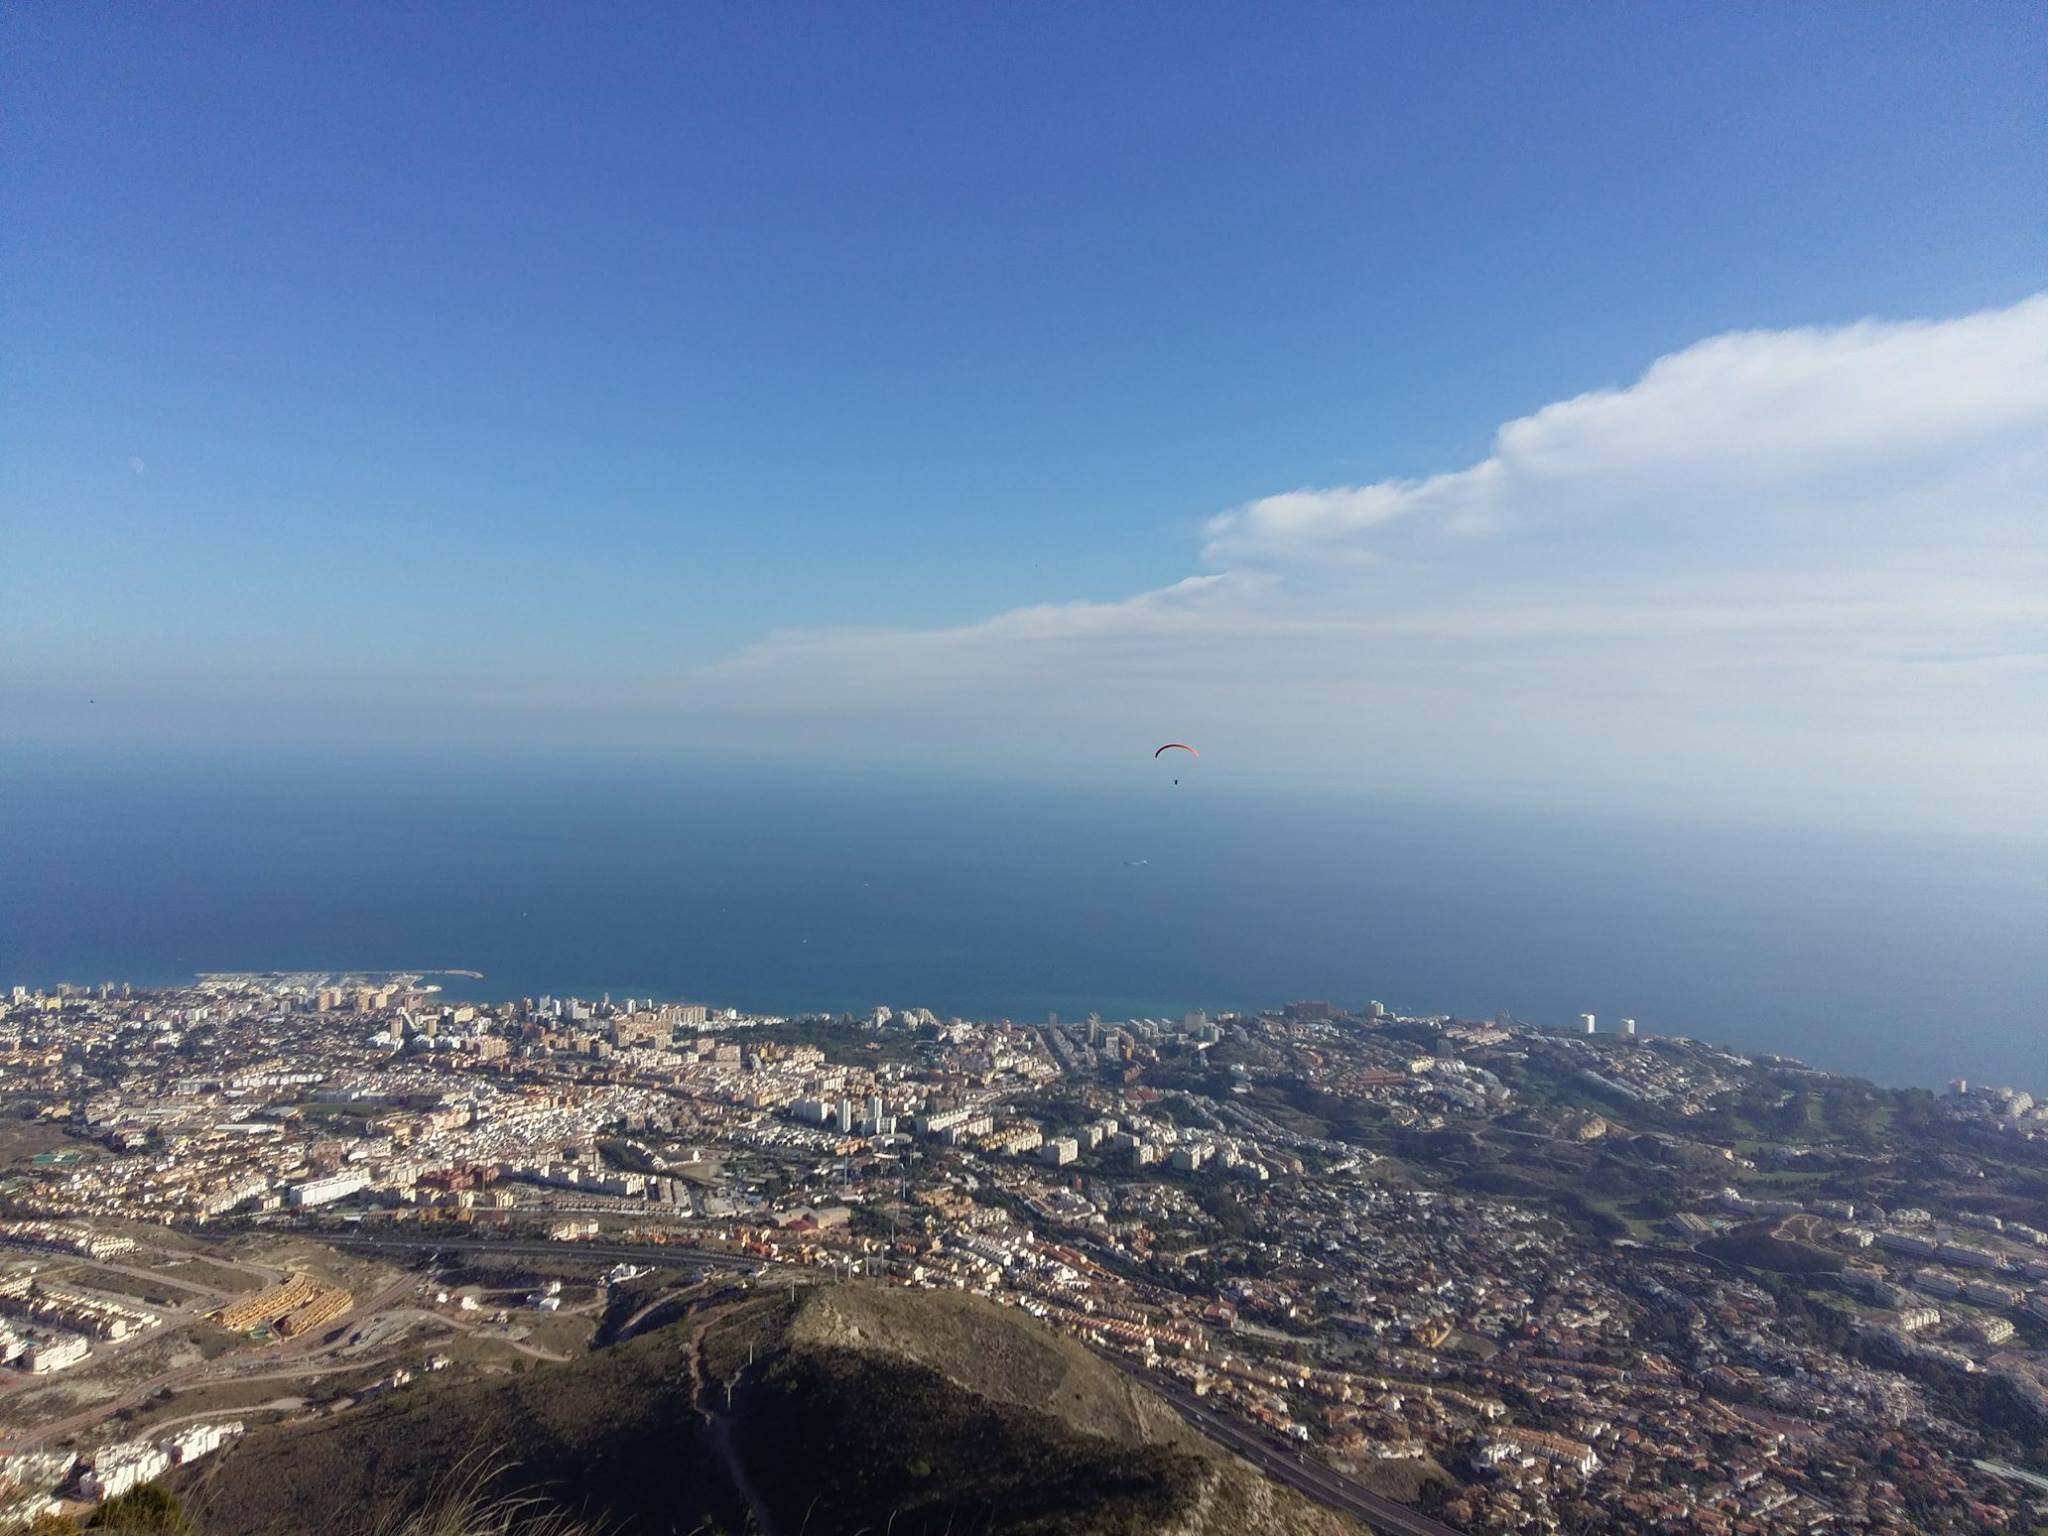 Above the Benalmadena